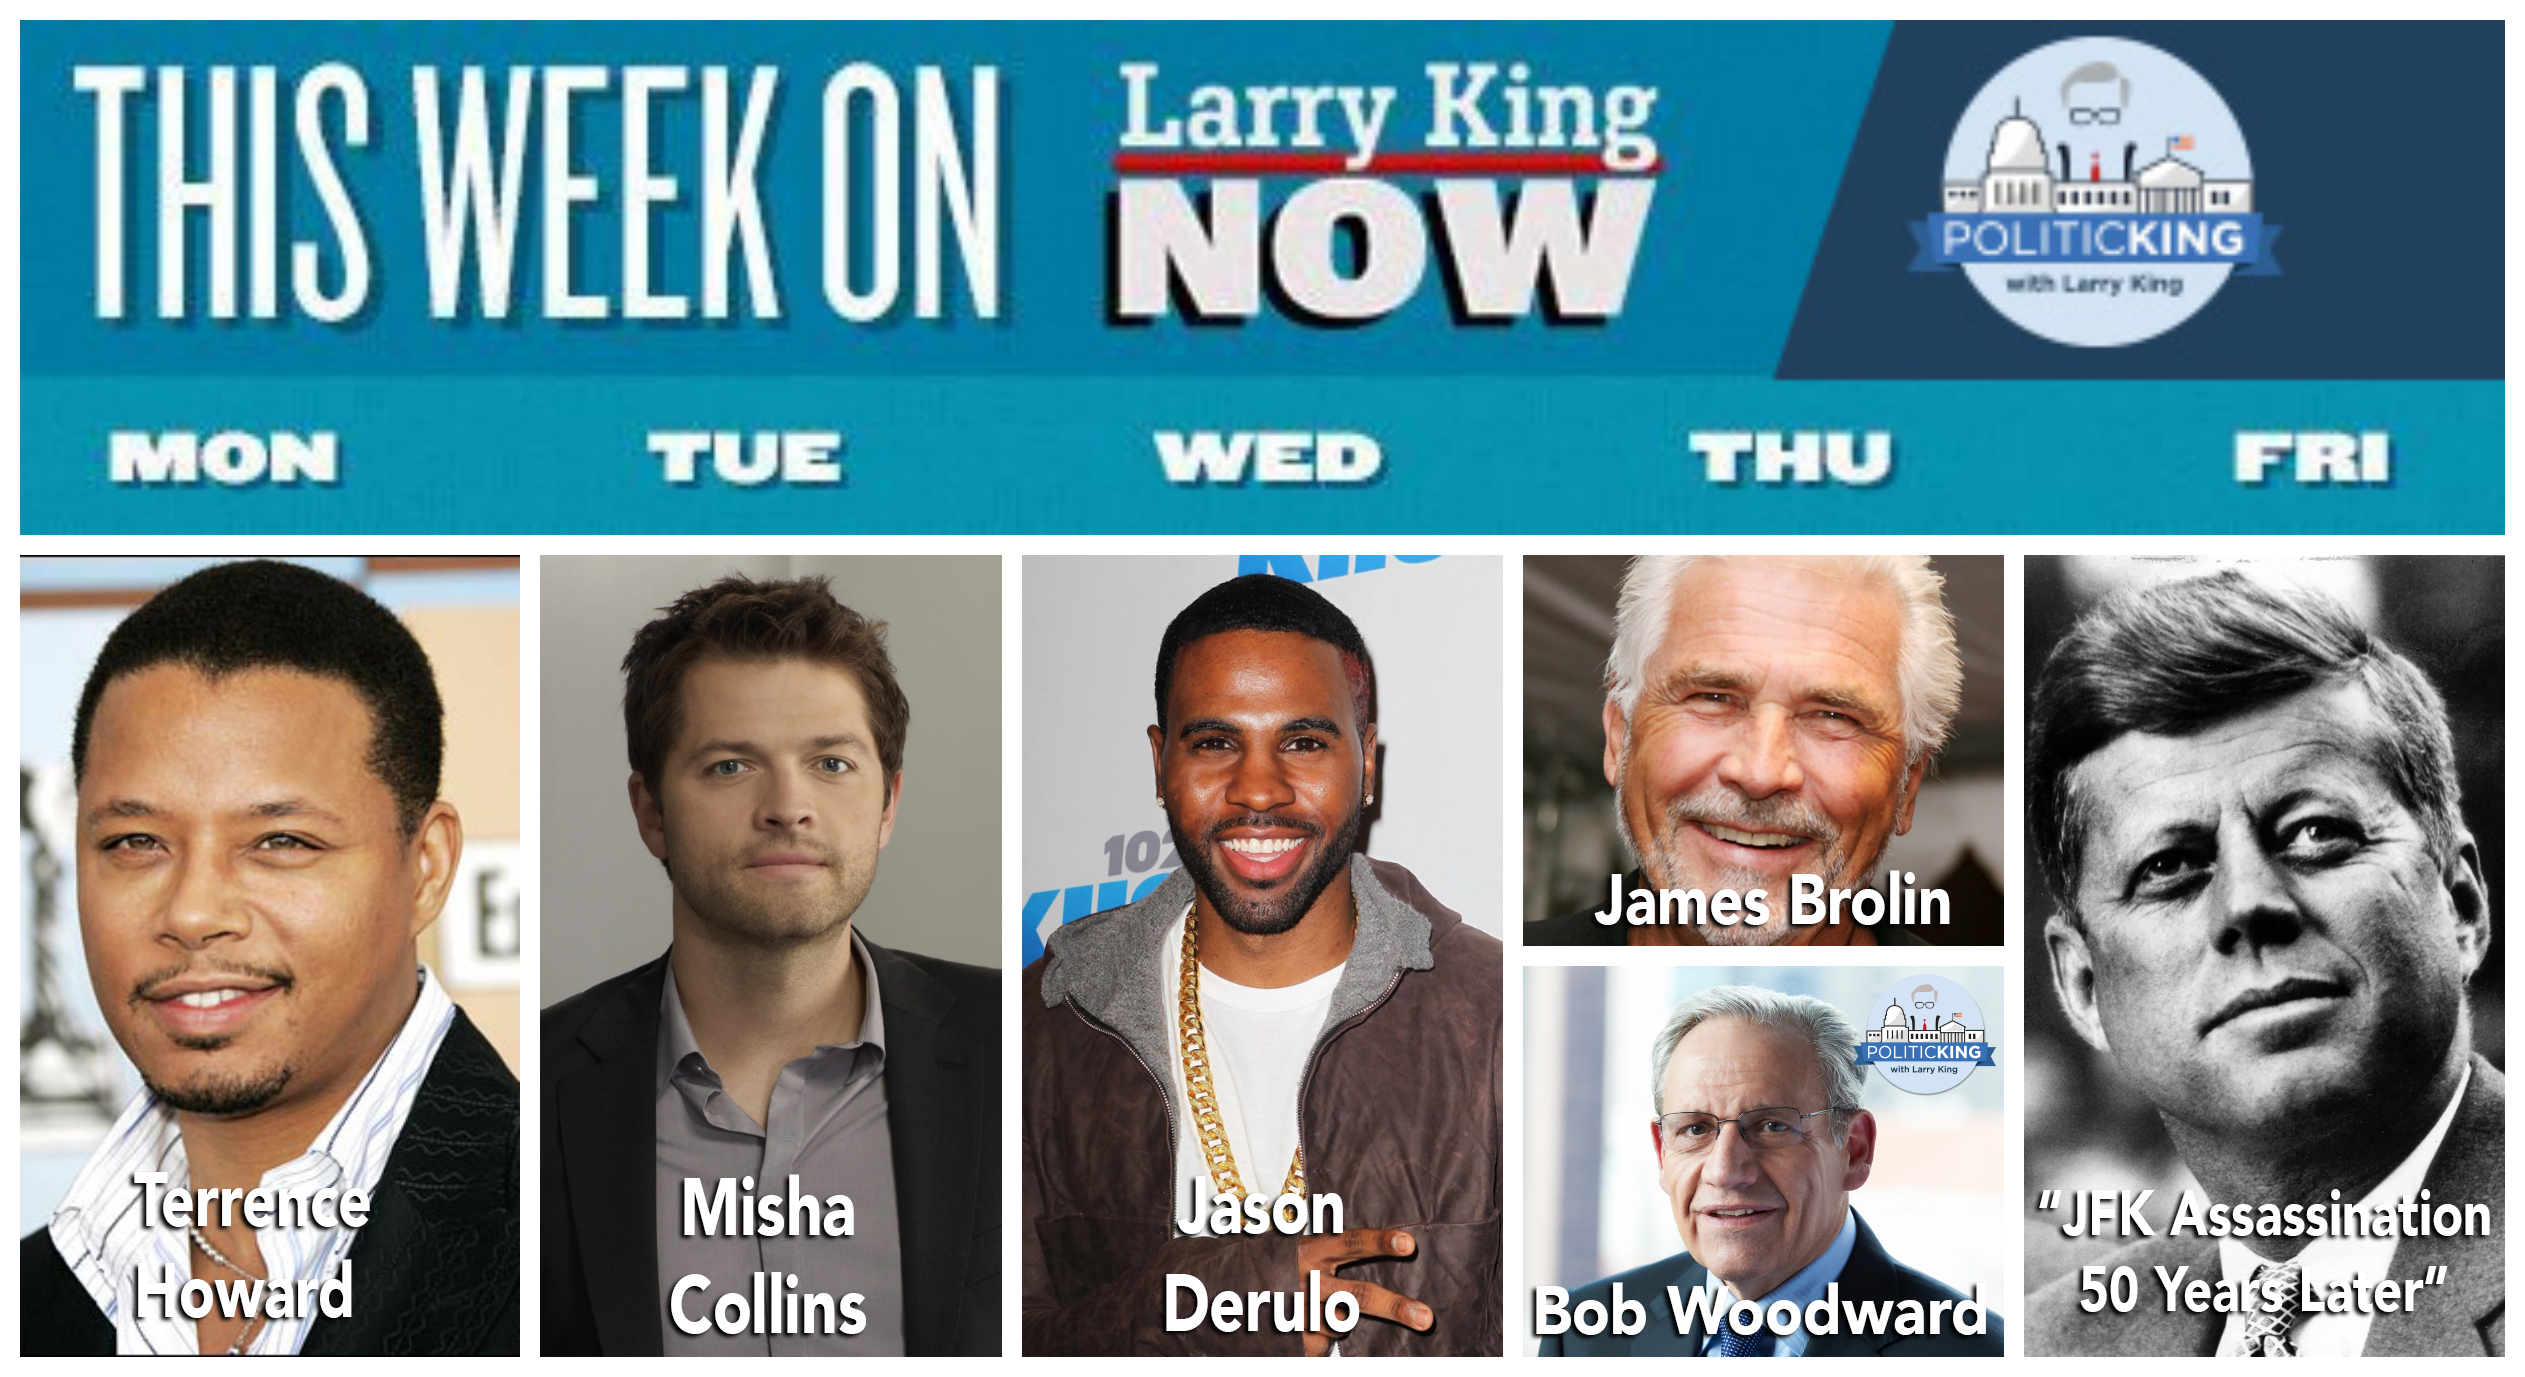 Larry King Now, Misha Collins, Jason Derulo, Terrence Howard, James Brolin, Bob Woodward, JFK